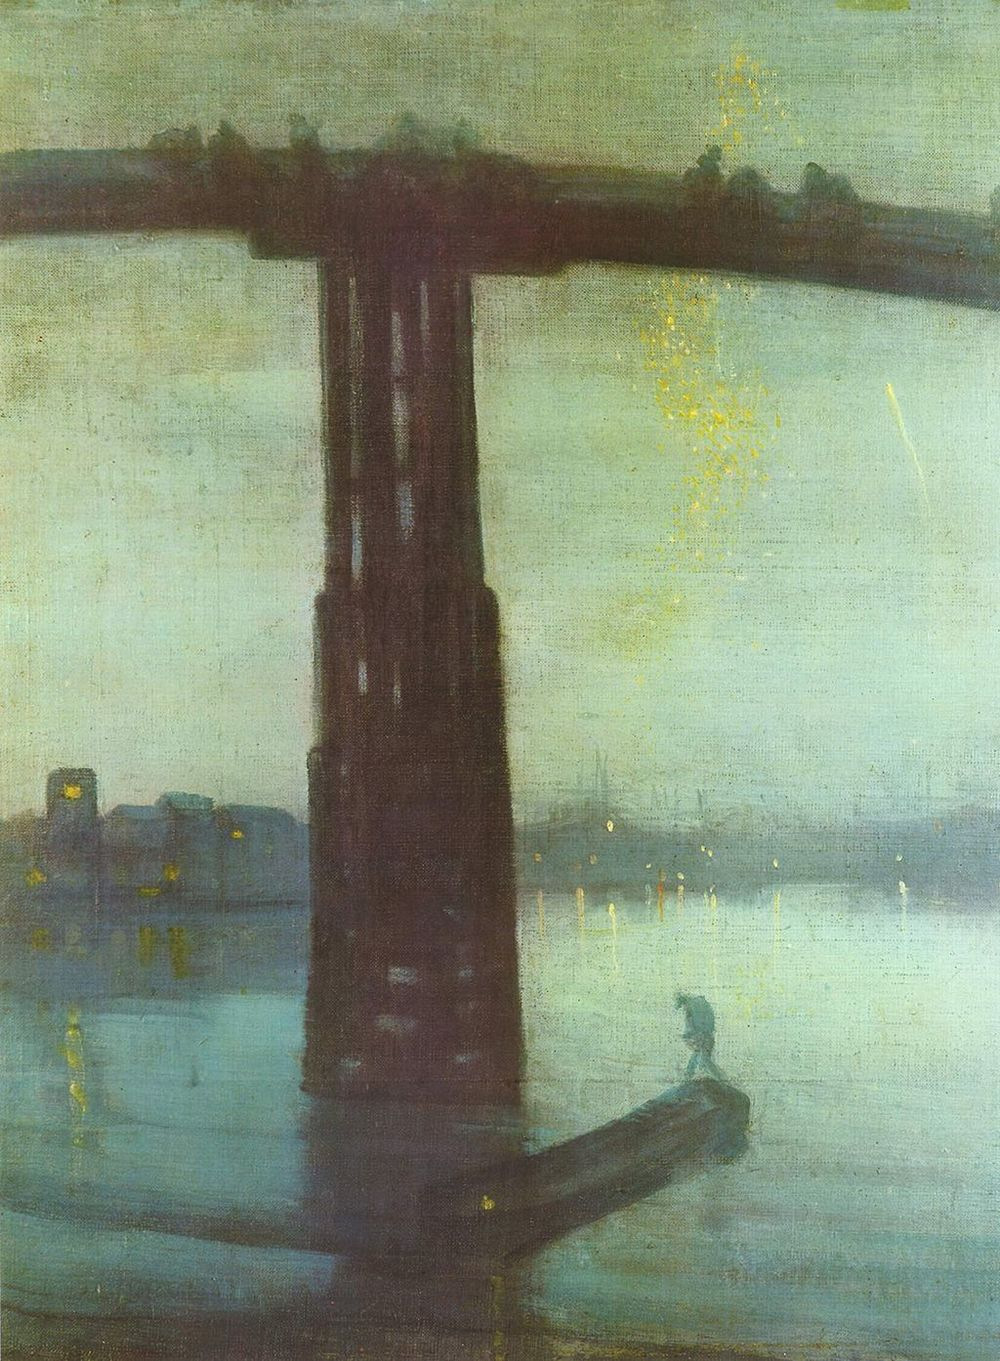 James Abbott McNeill Whistler, Nocturne: Blue and Gold - Old Battersea Bridge, 1872, Tate Britain, London.